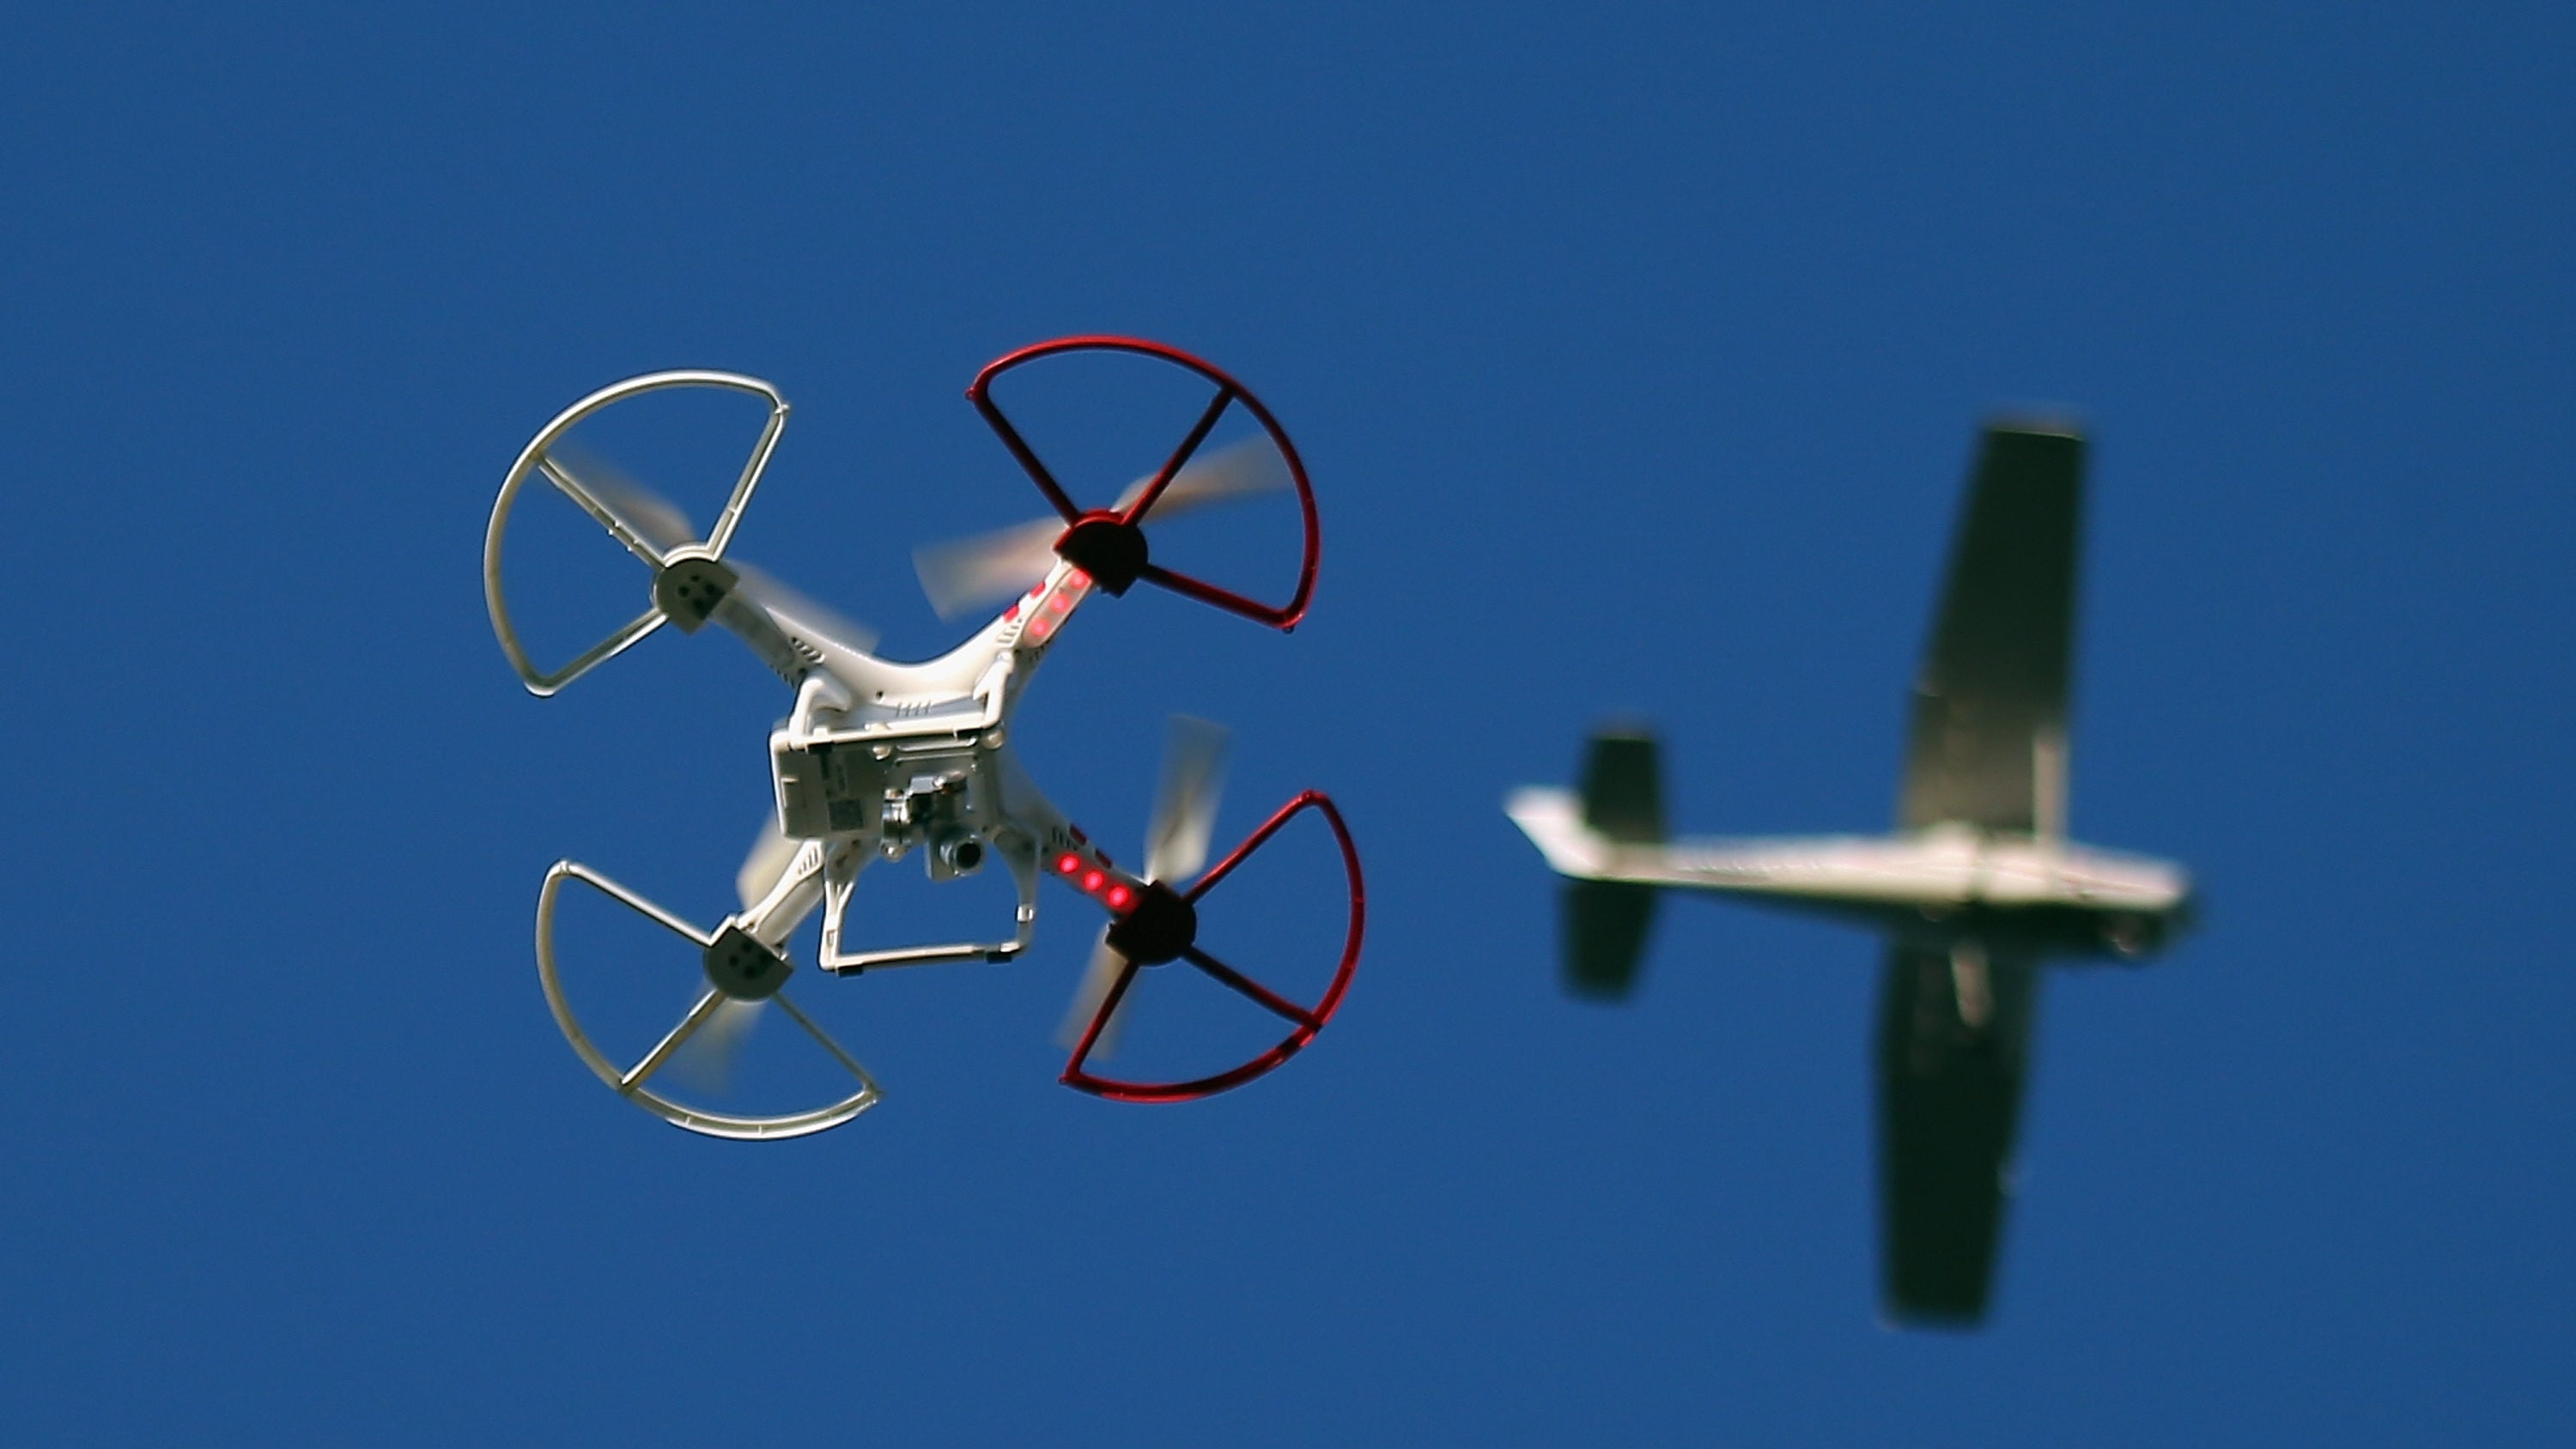 A Drone Company Allegedly Brought A Bomb On A Commercial Flight And Fired An Employee For Reporting It